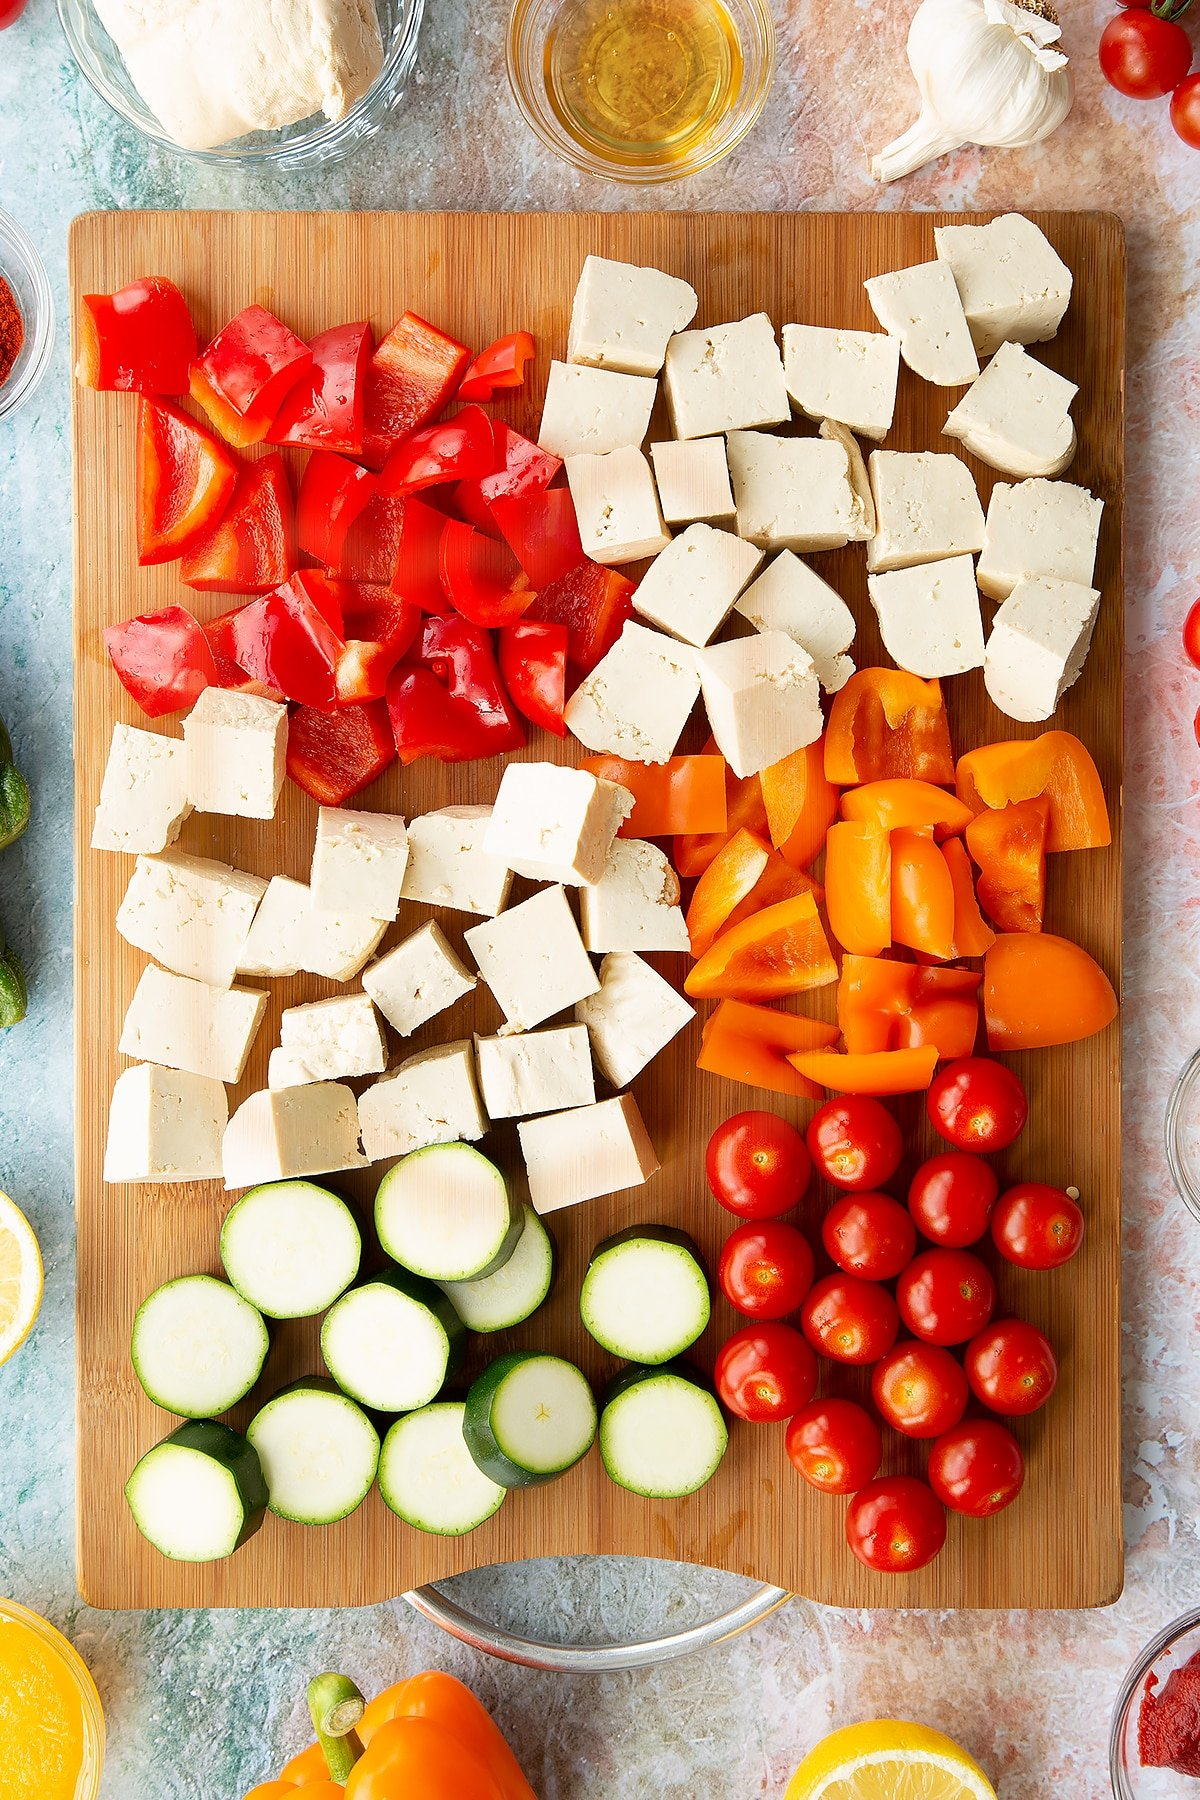 All the ingredients for the tofu skewers on a board: whole cherry tomatoes, thickly sliced courgette, chopped red and orange peppers, cubed tofu.